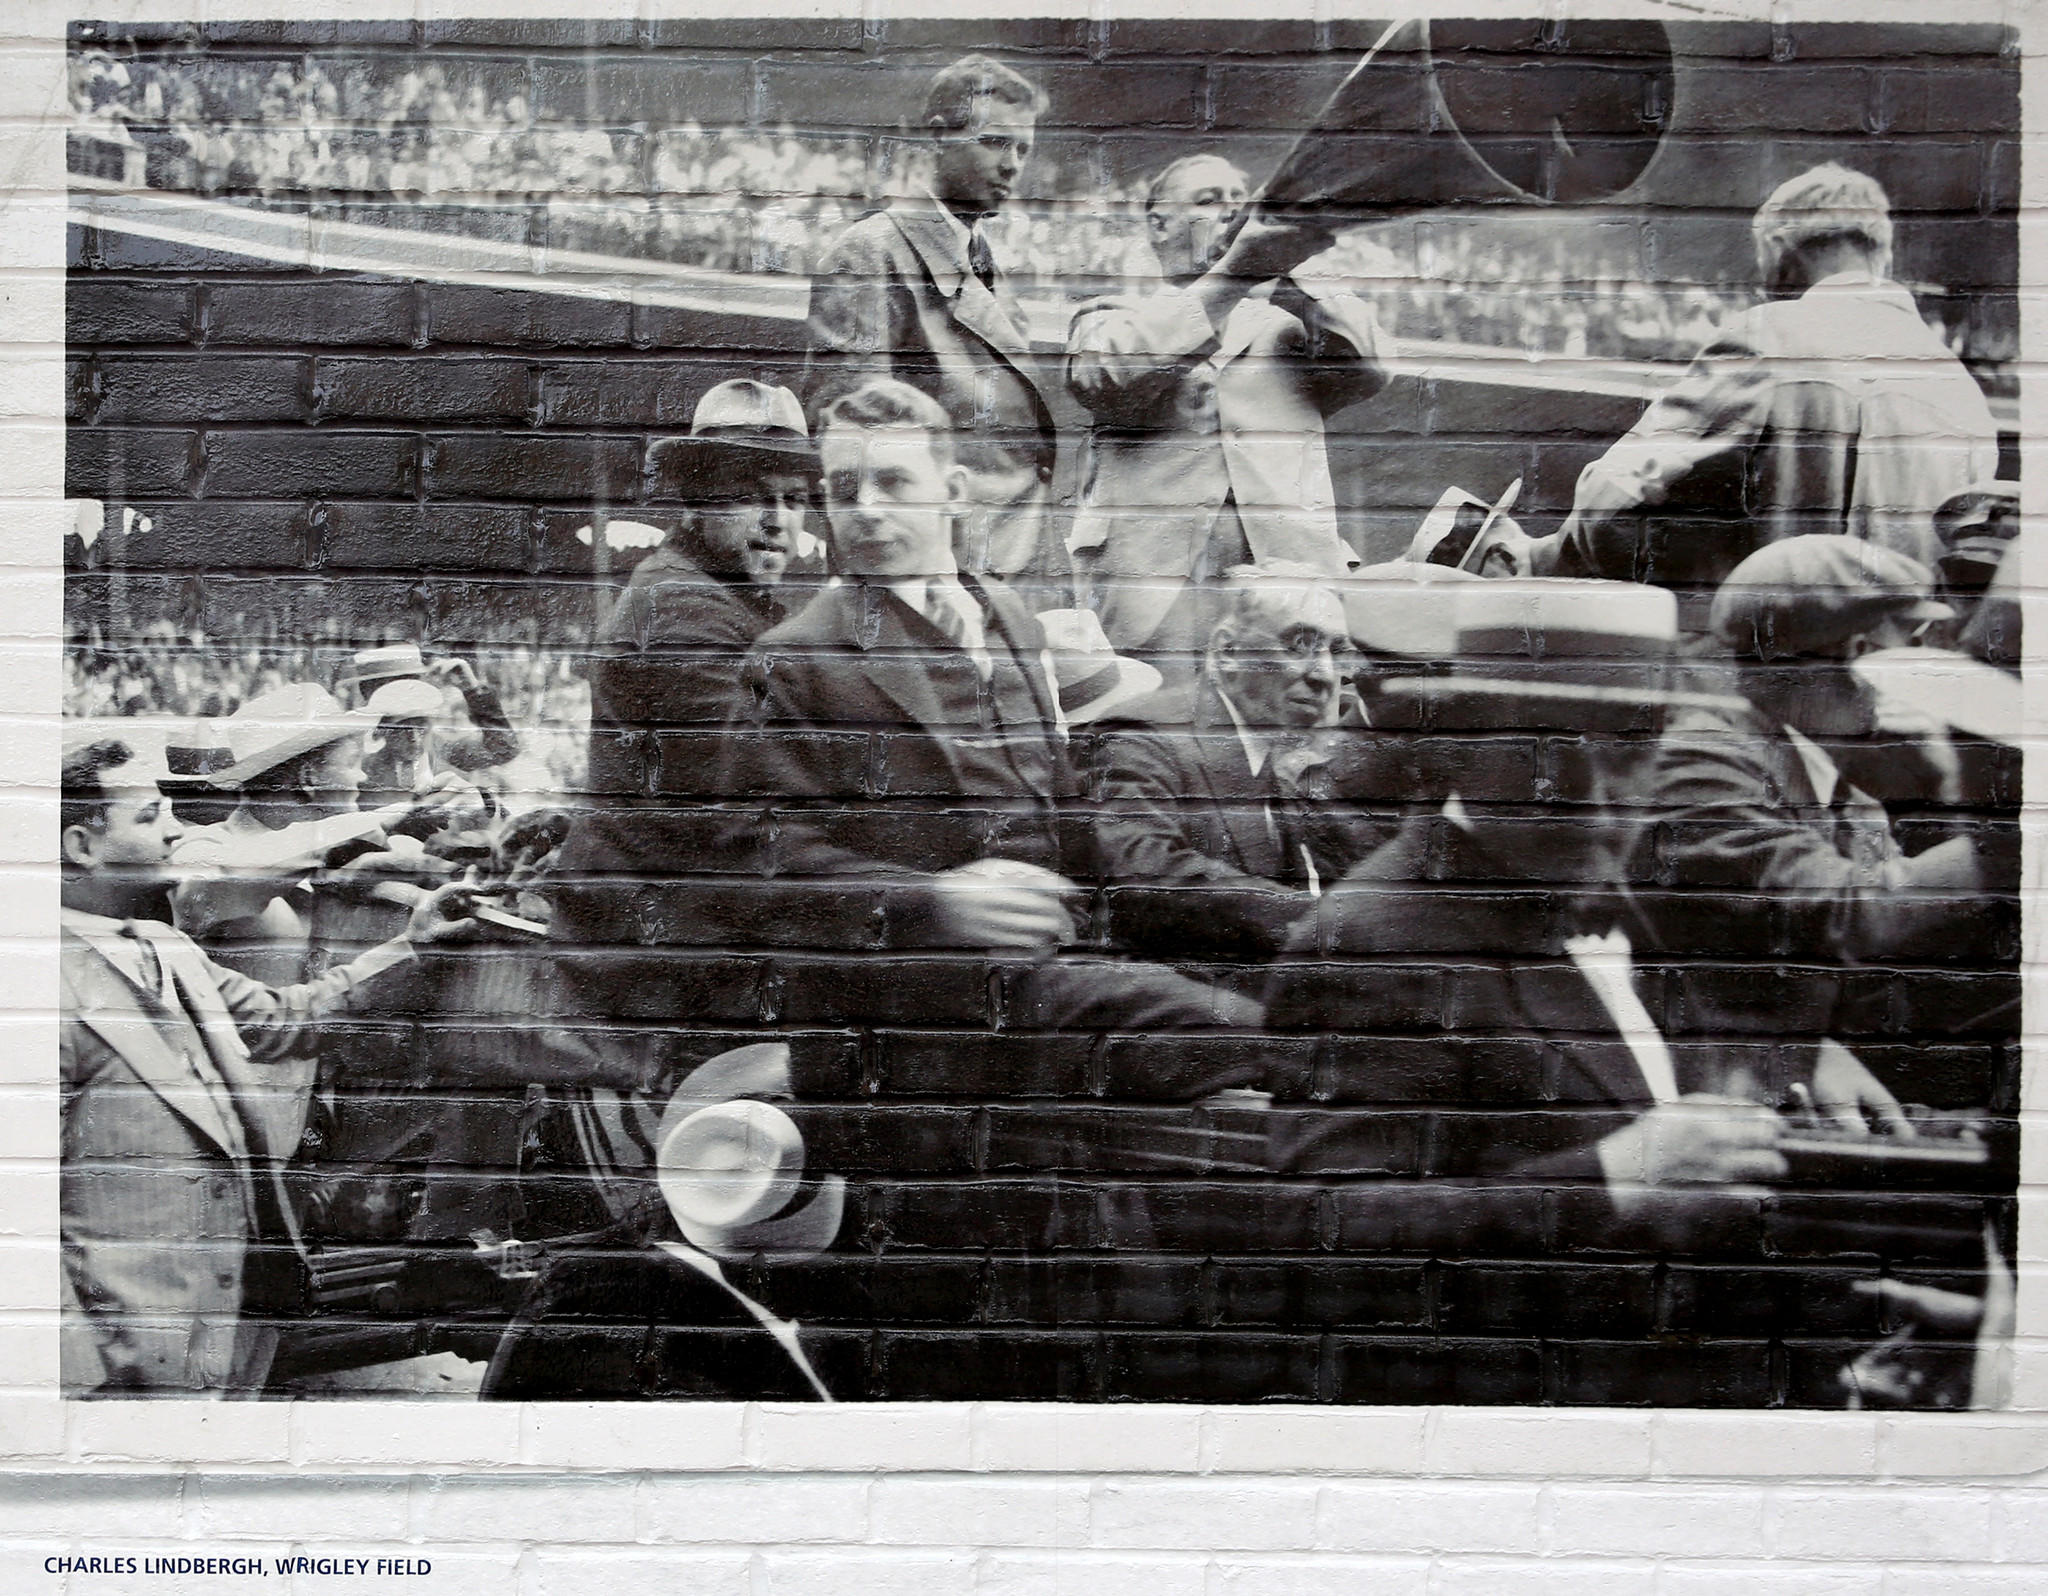 Wrigley Field in Chicago is celebrating their 100 year anniversary and they put up historic photos onto the brick on Waveland Avenue. One of the murals, a photo of Charles Lindbergh visiting Wrigley Field, is said to actually be of Comiskey Park.